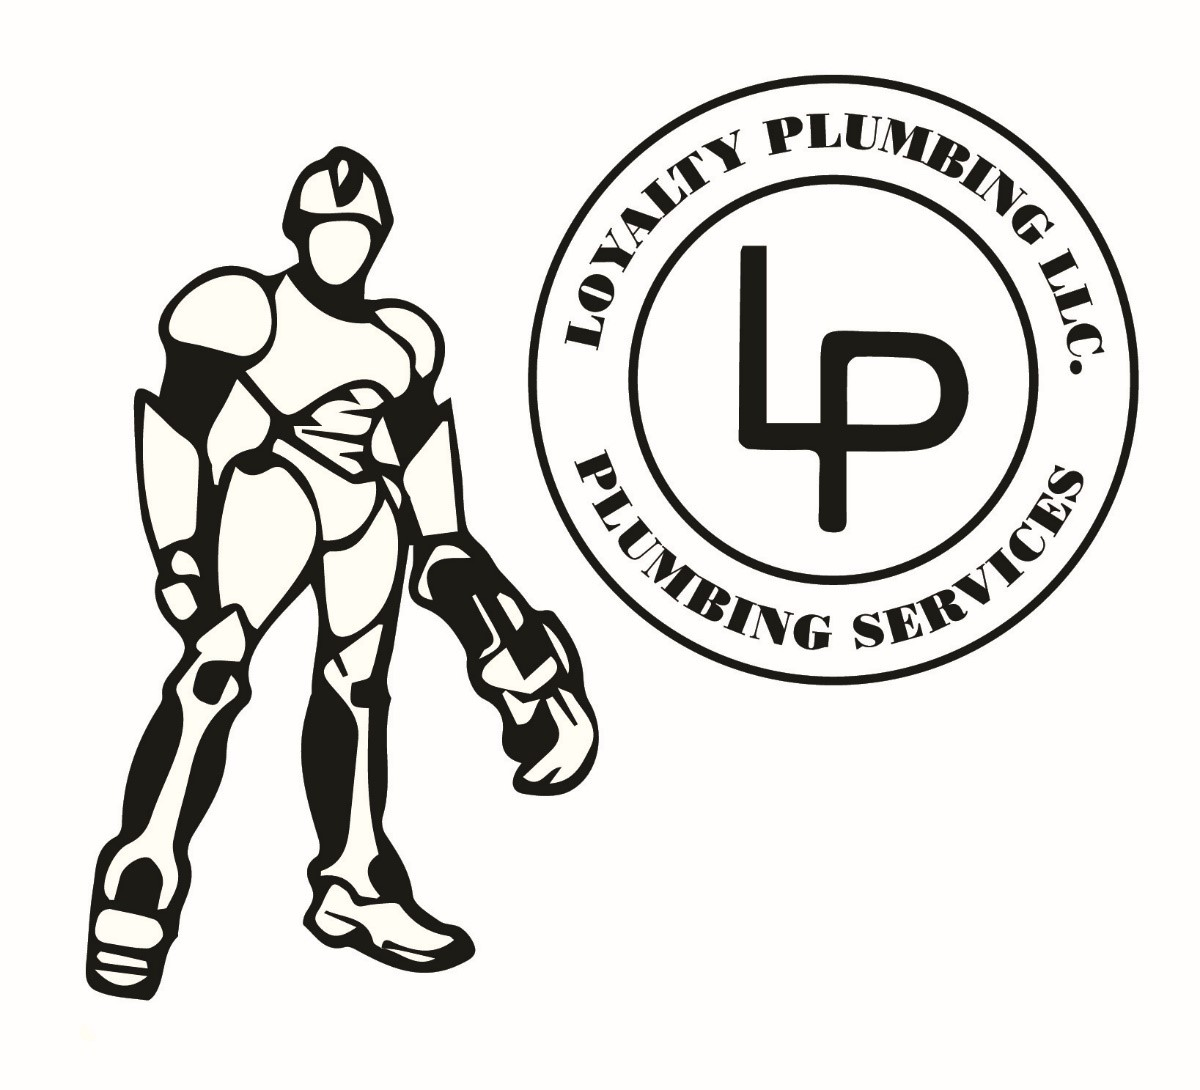 Loyalty PLumbing, LLC